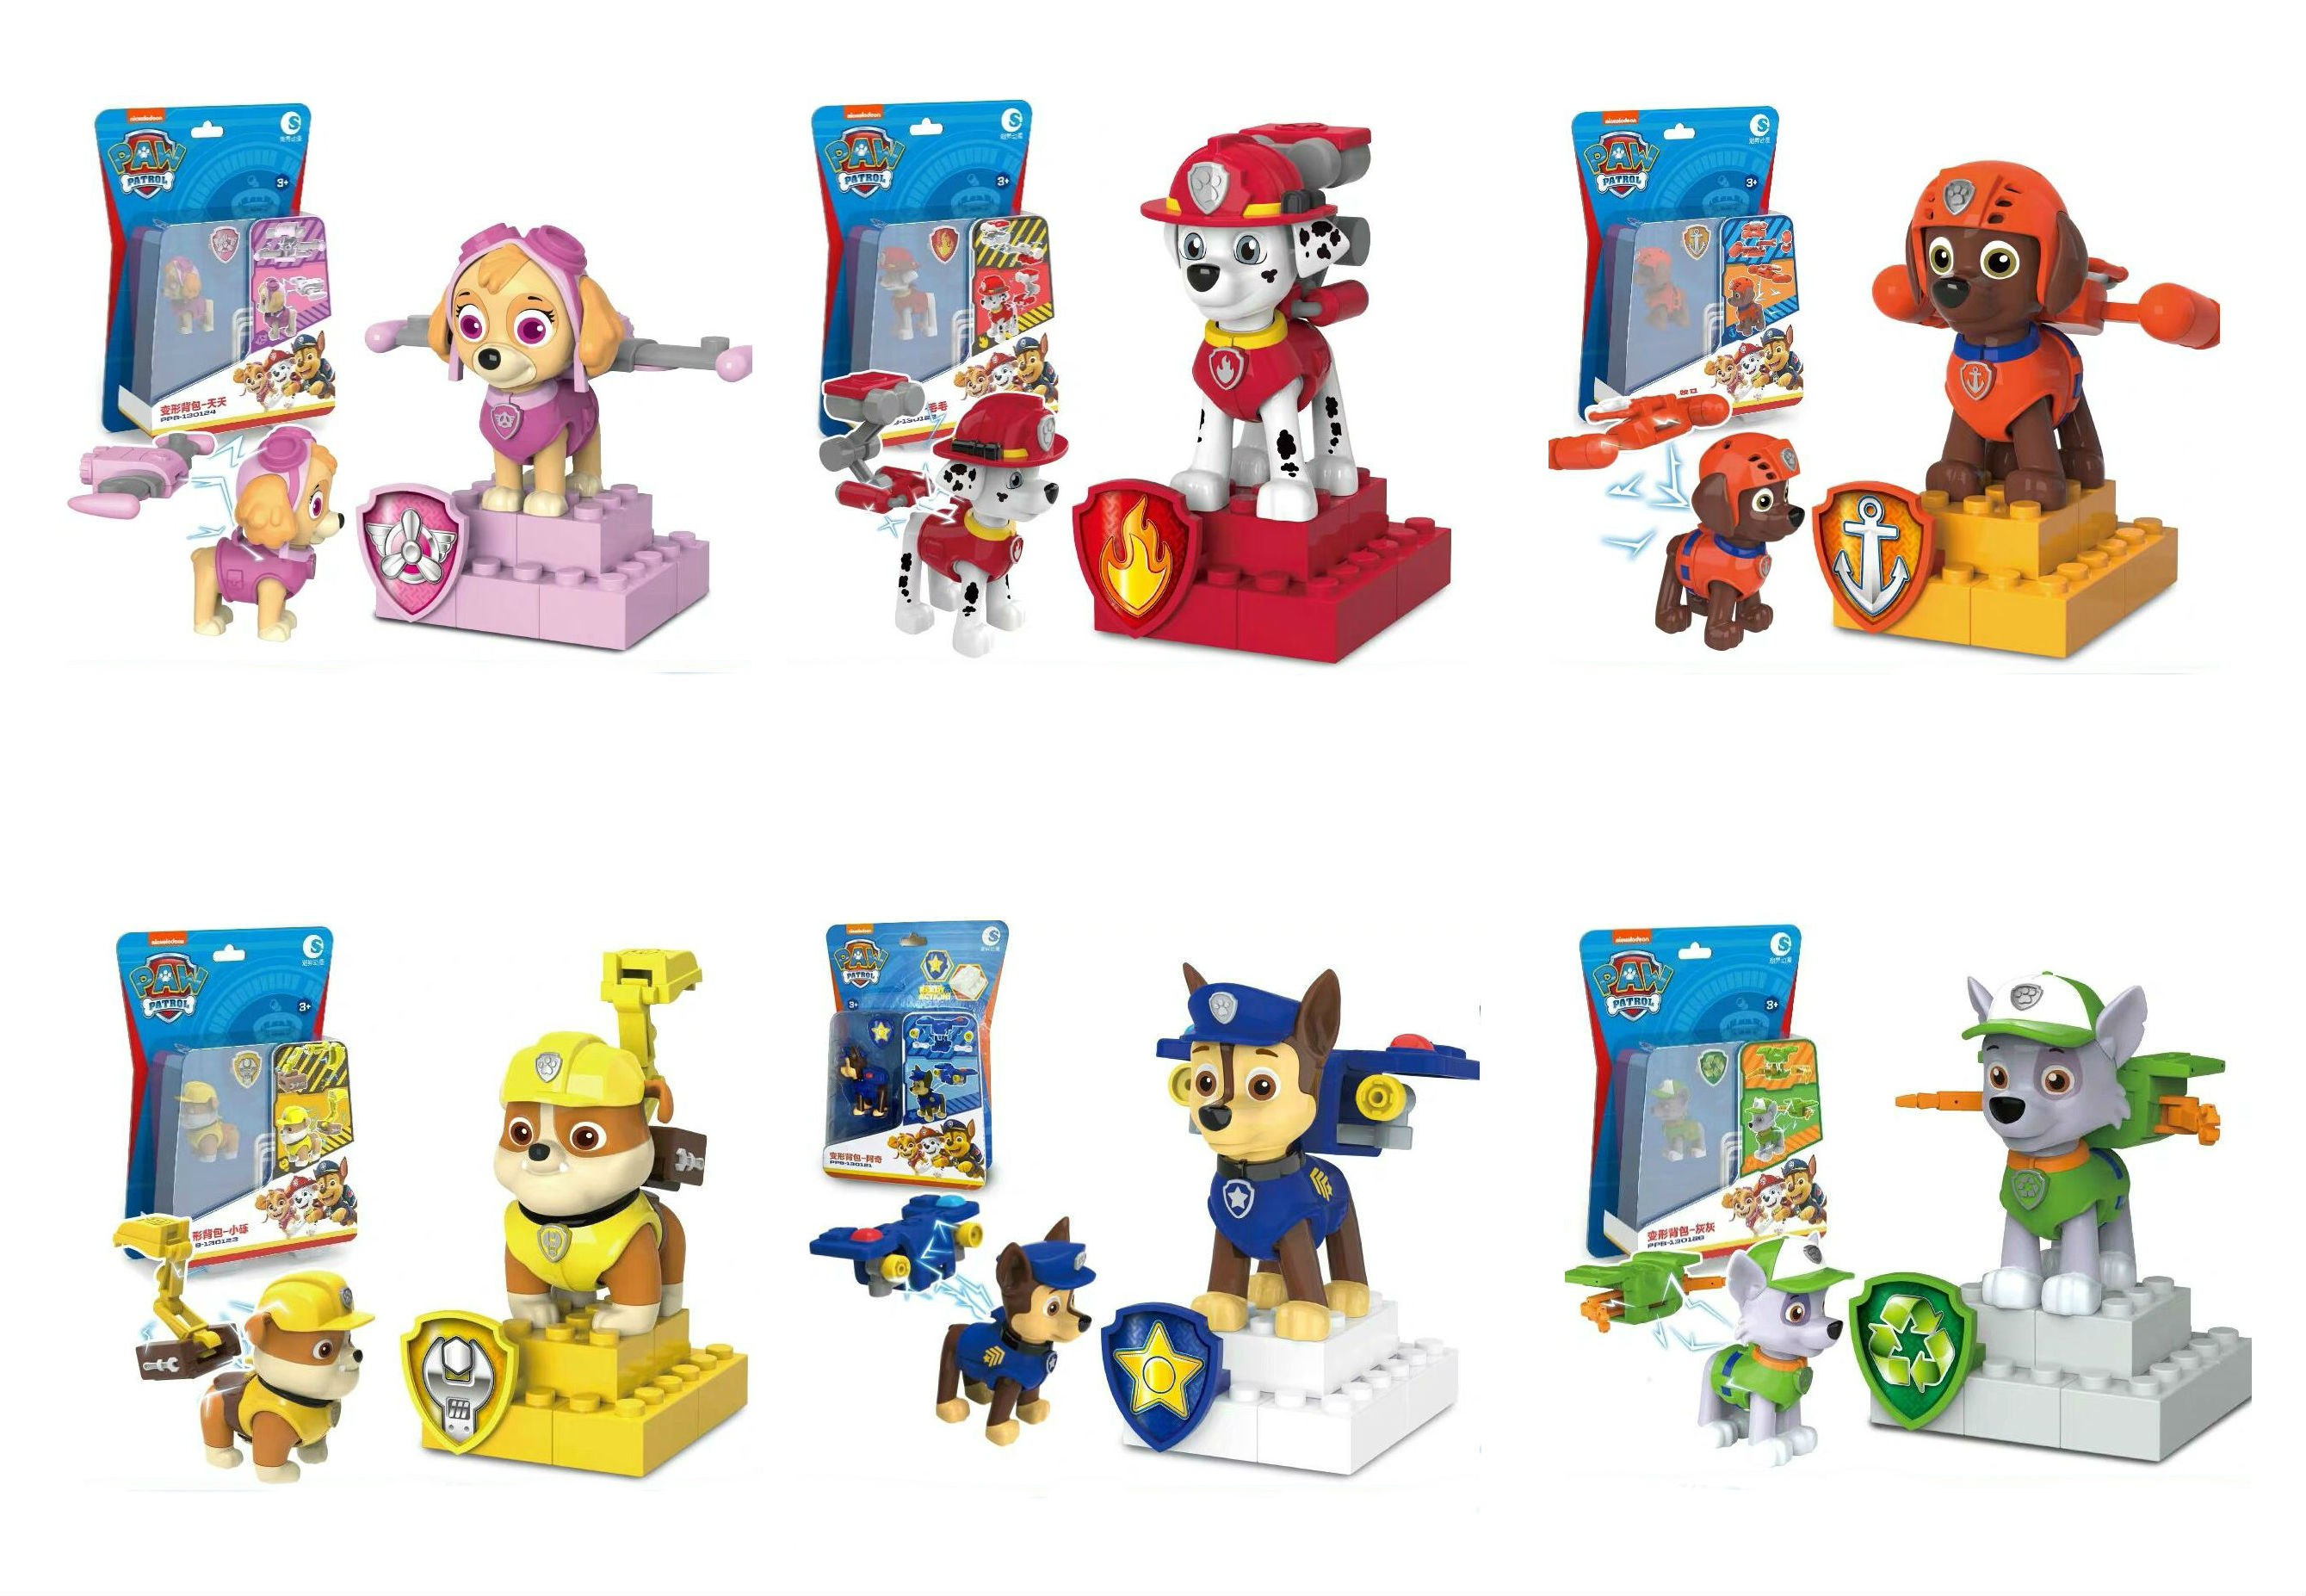 2020 Original Box Paw Patrol Chase Marshall Skye Rubble Apollo Rocky Mini Building Blocks Children Toy Kids Birthday Gift Doll